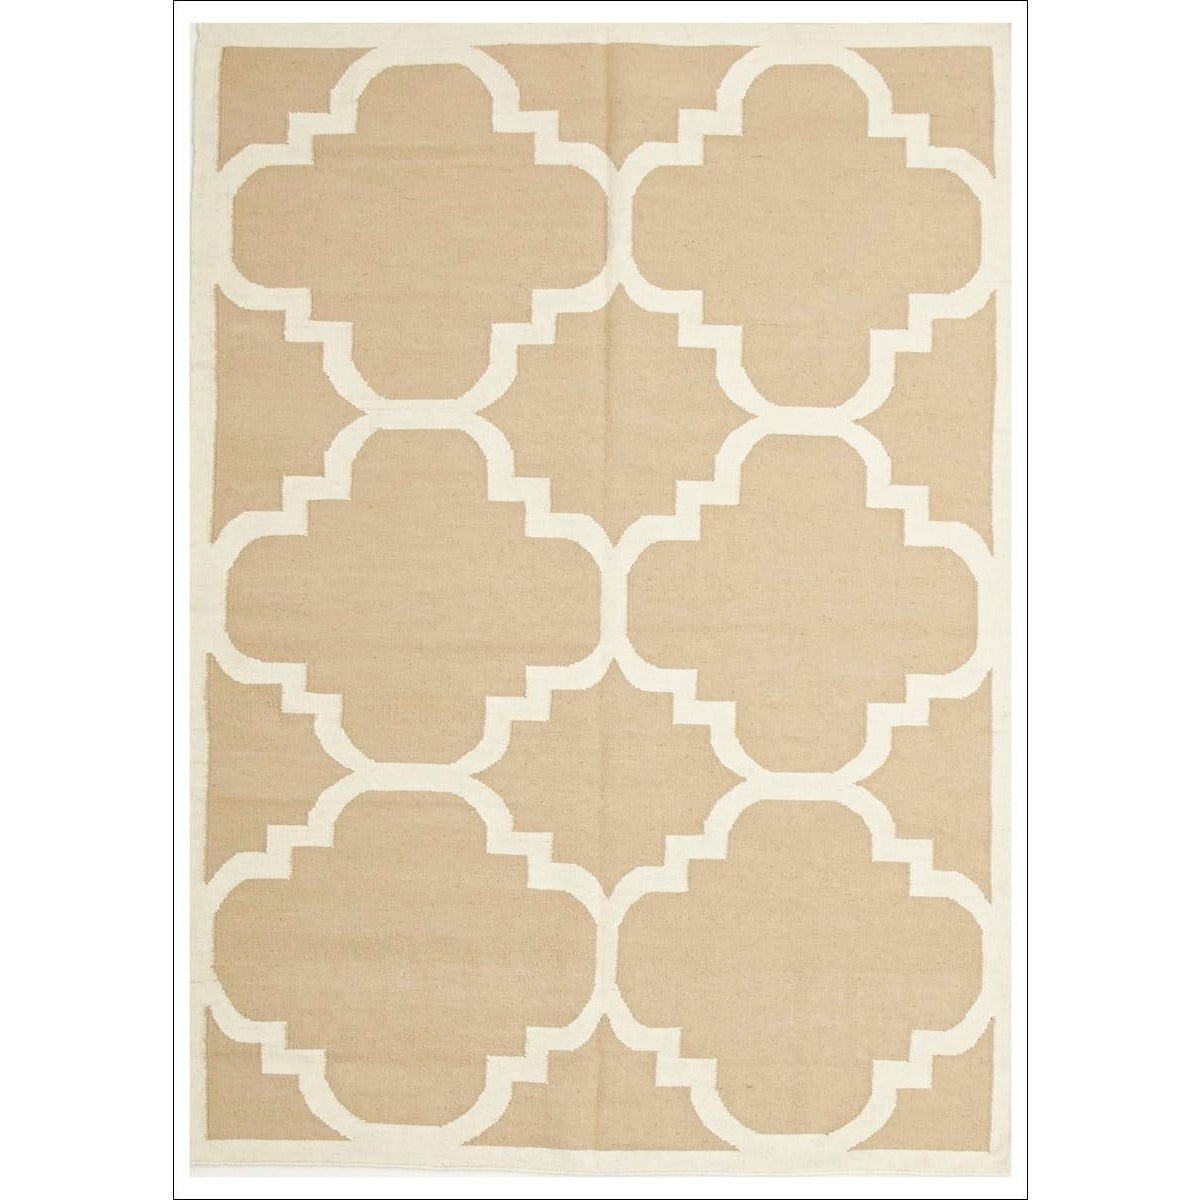 Hand Knotted Flat Weave Large Moroccan Design Wool Rug Beige